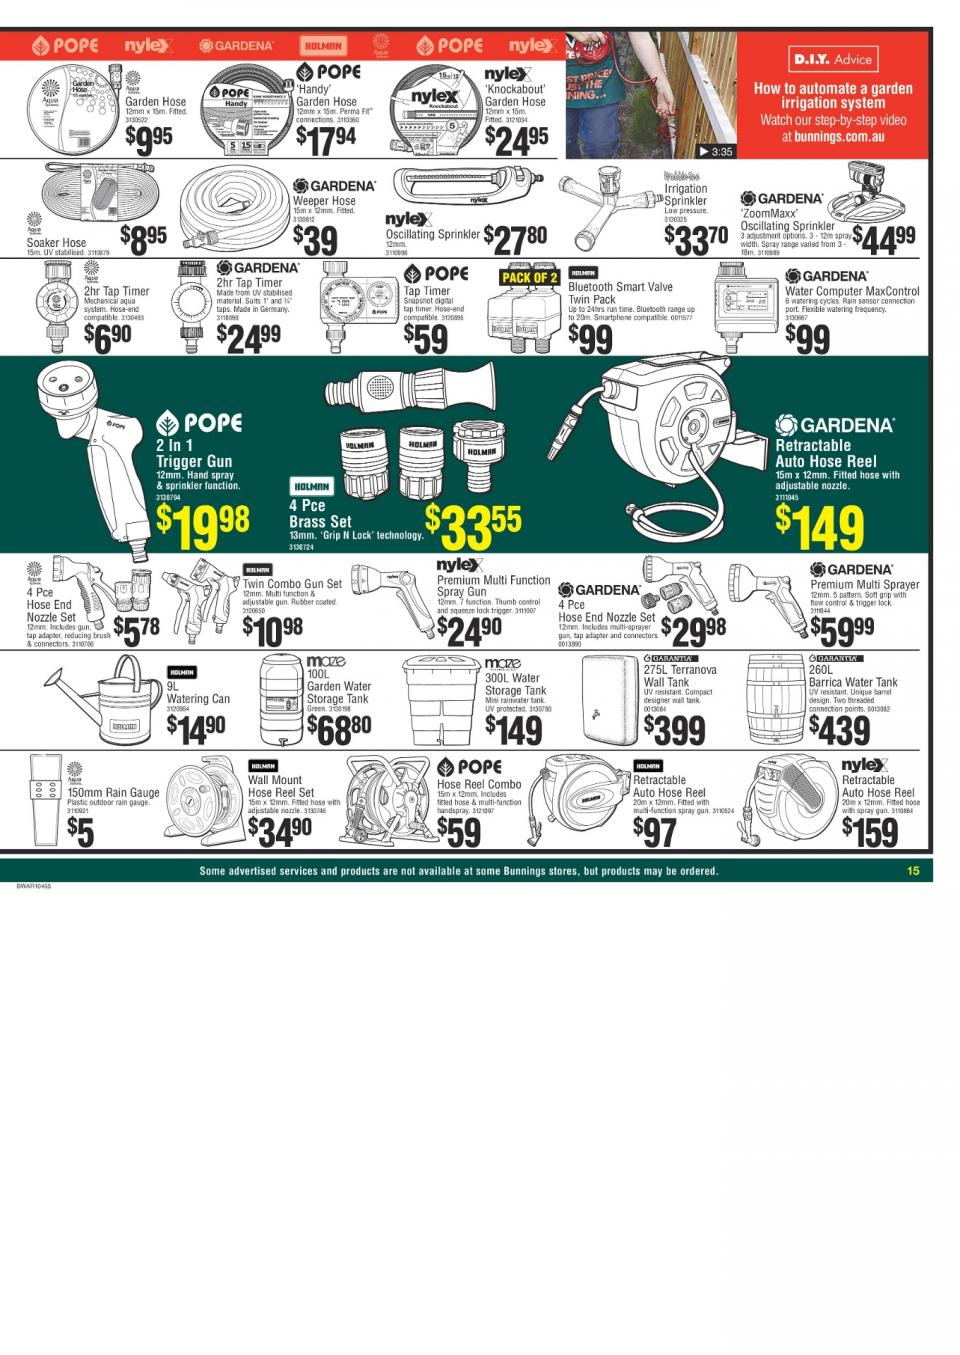 Bunnings catalogue march 2018 page 15 for Gardening tools bunnings